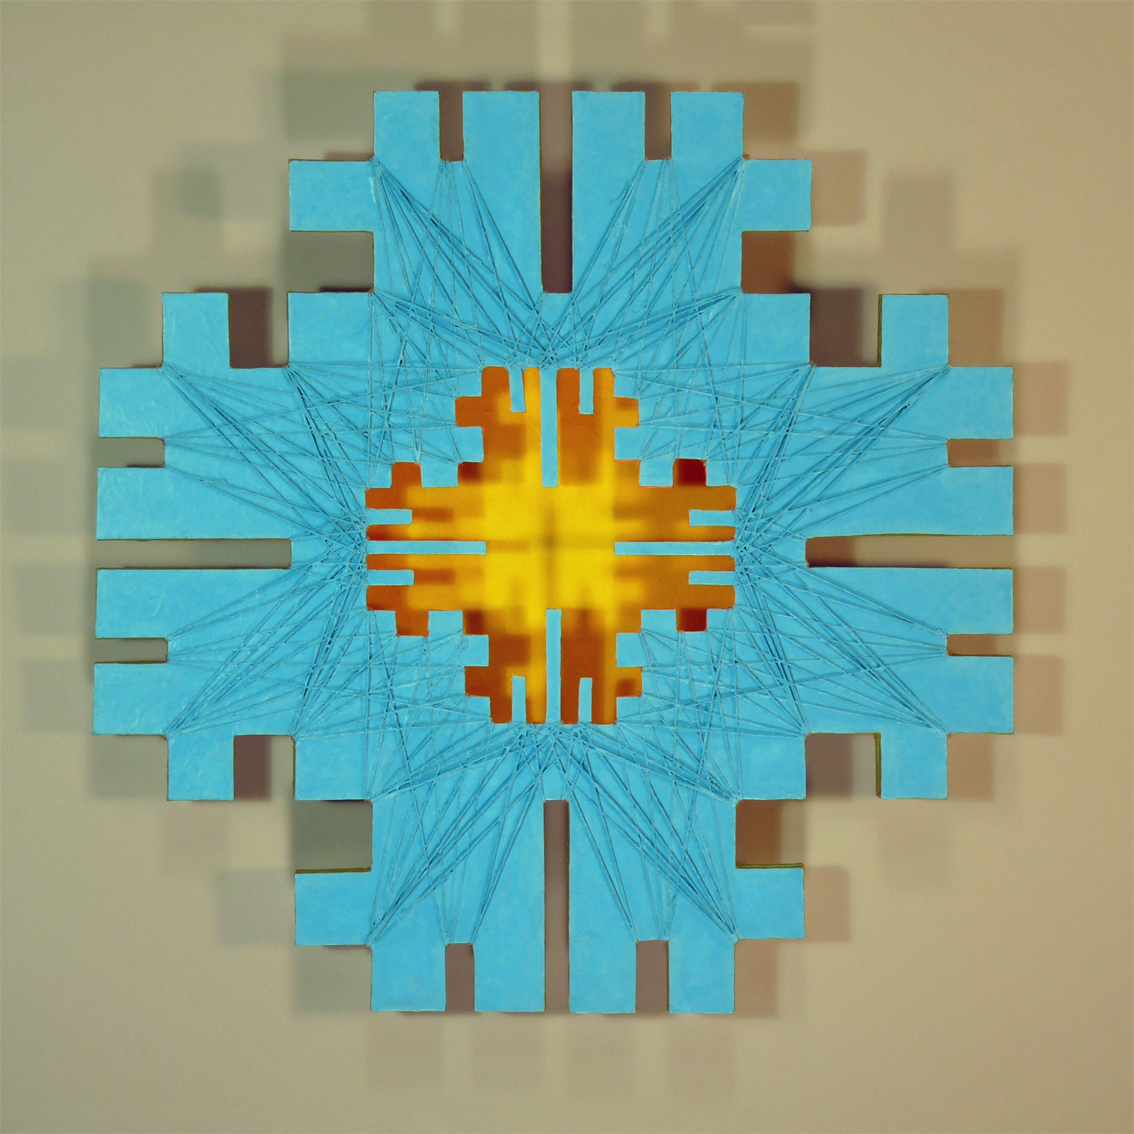 geometric abstraction studying the sky, wall hung sculpture